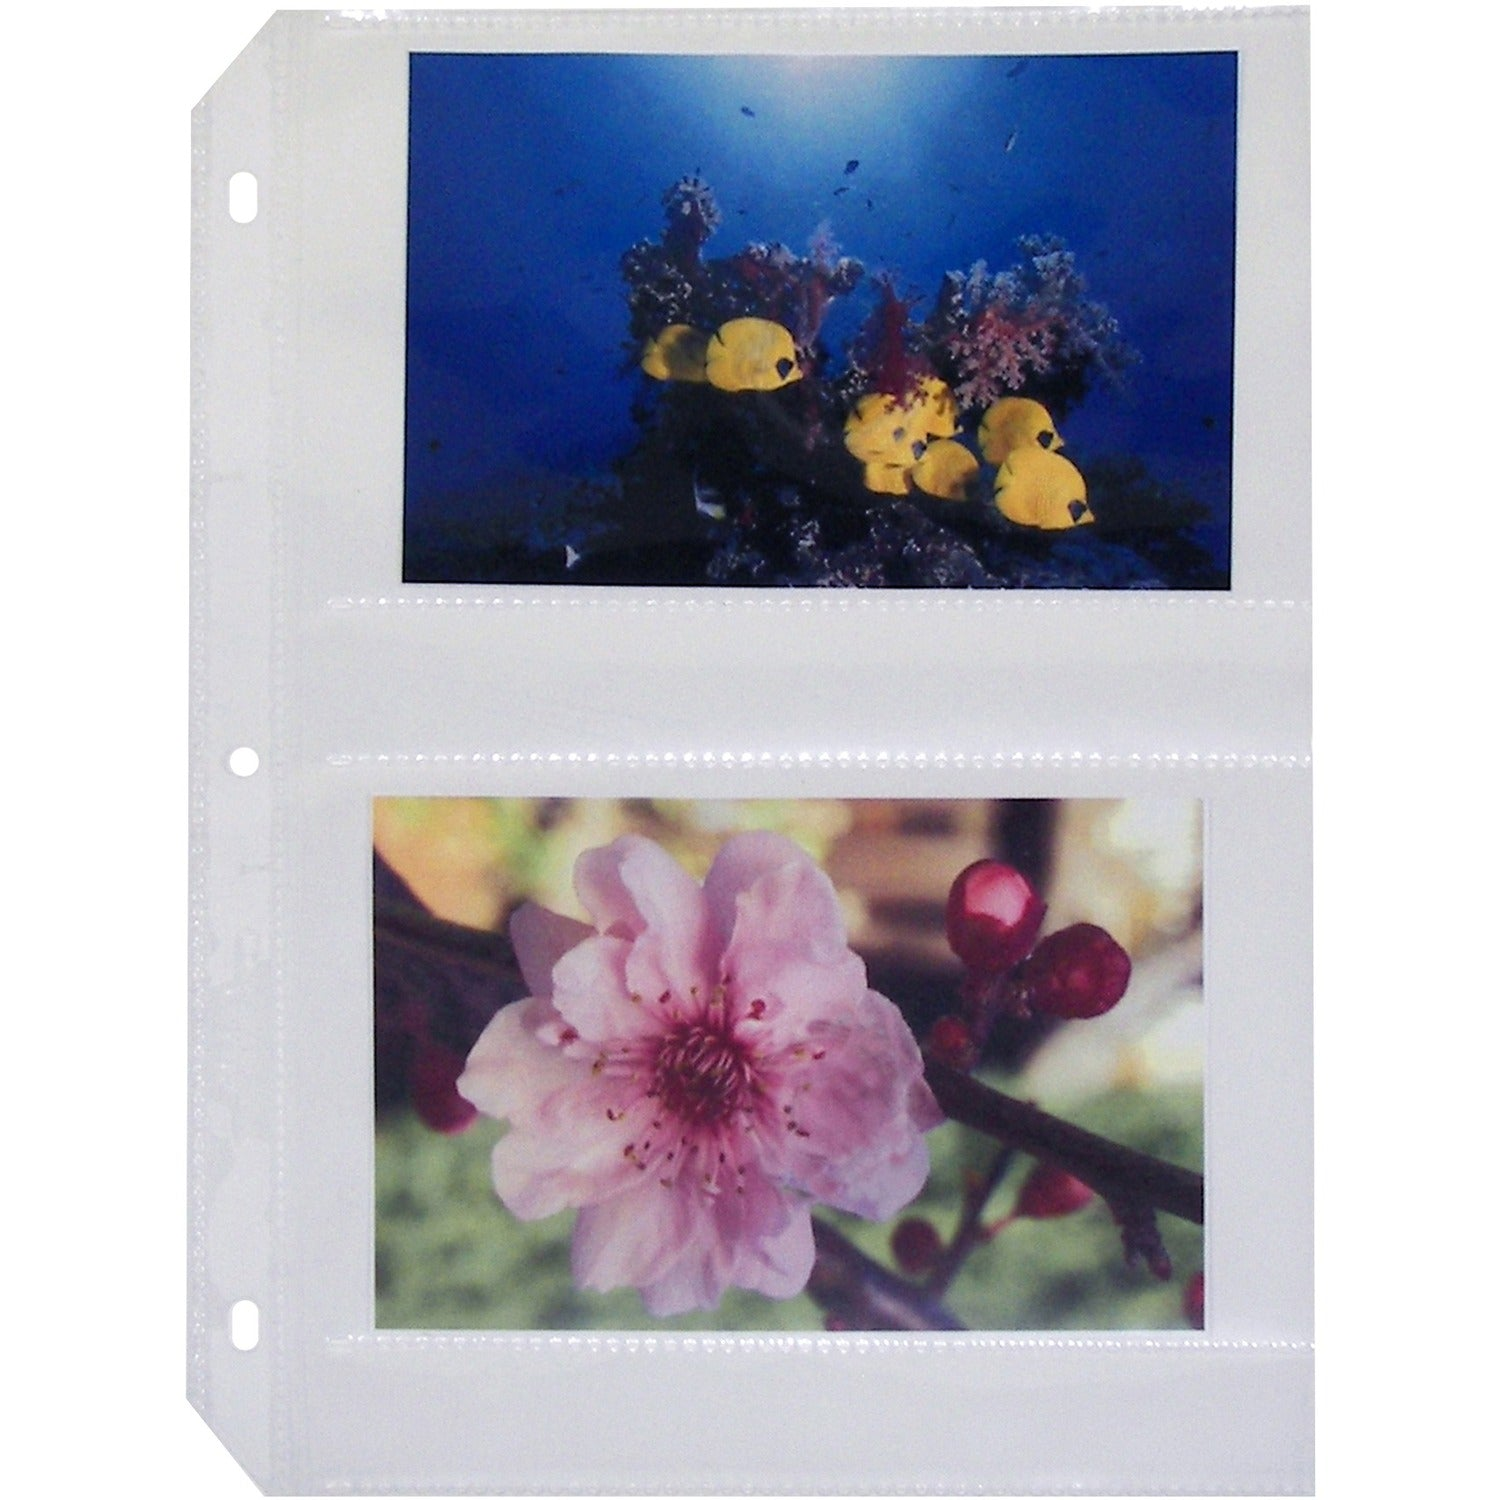 C-Line 35mm Ring Binder Photo Storage Pages - 4 x 6SKU: CLI 52564